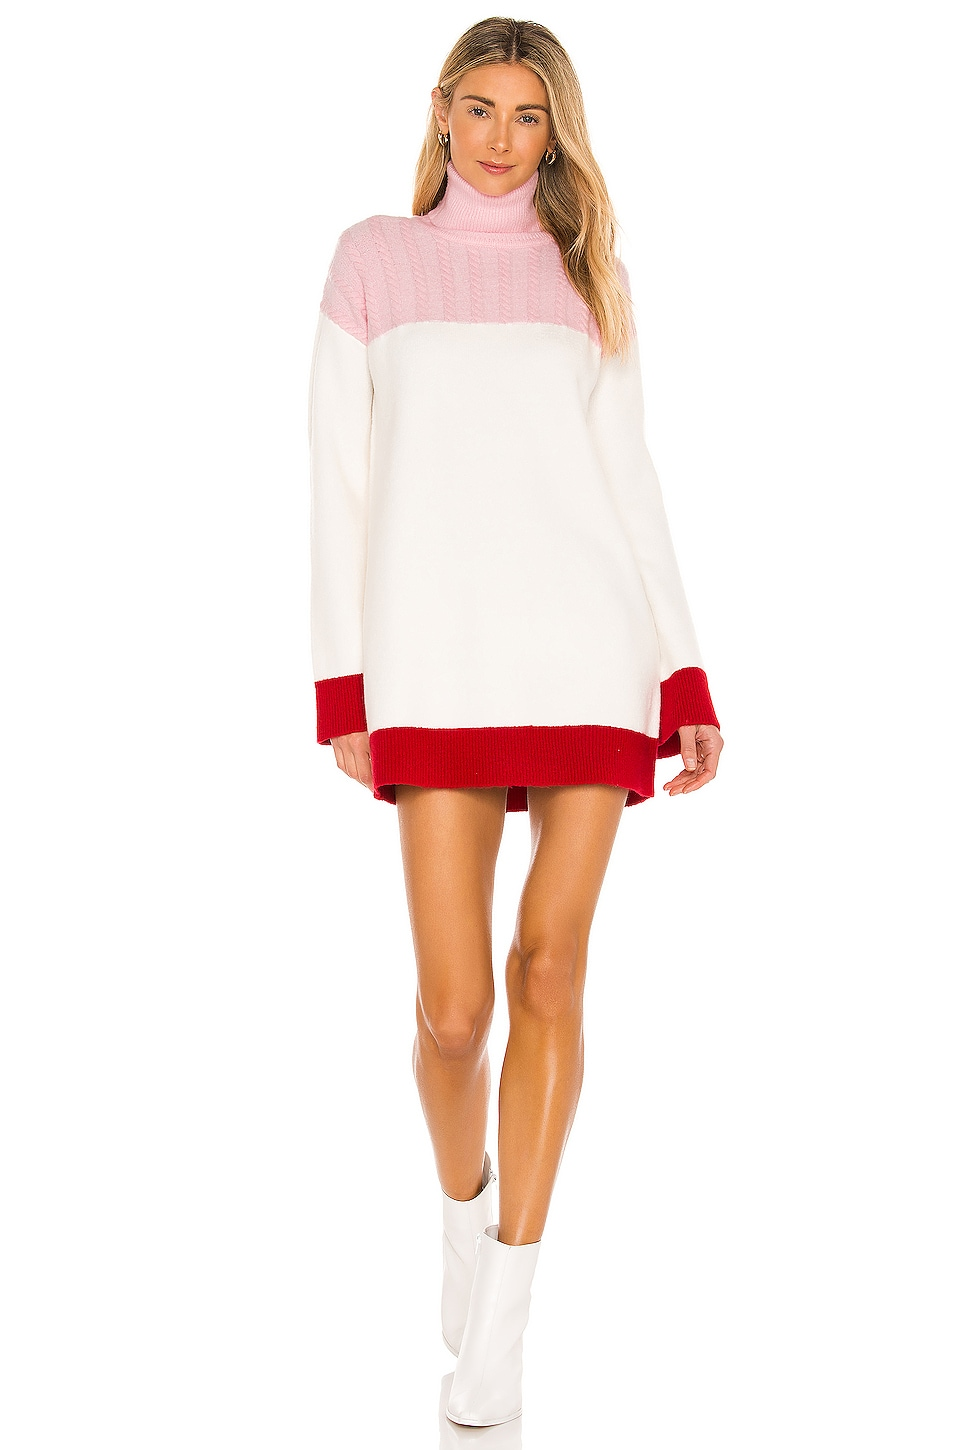 Lovers + Friends Kane Sweater Dress in Pink & Red